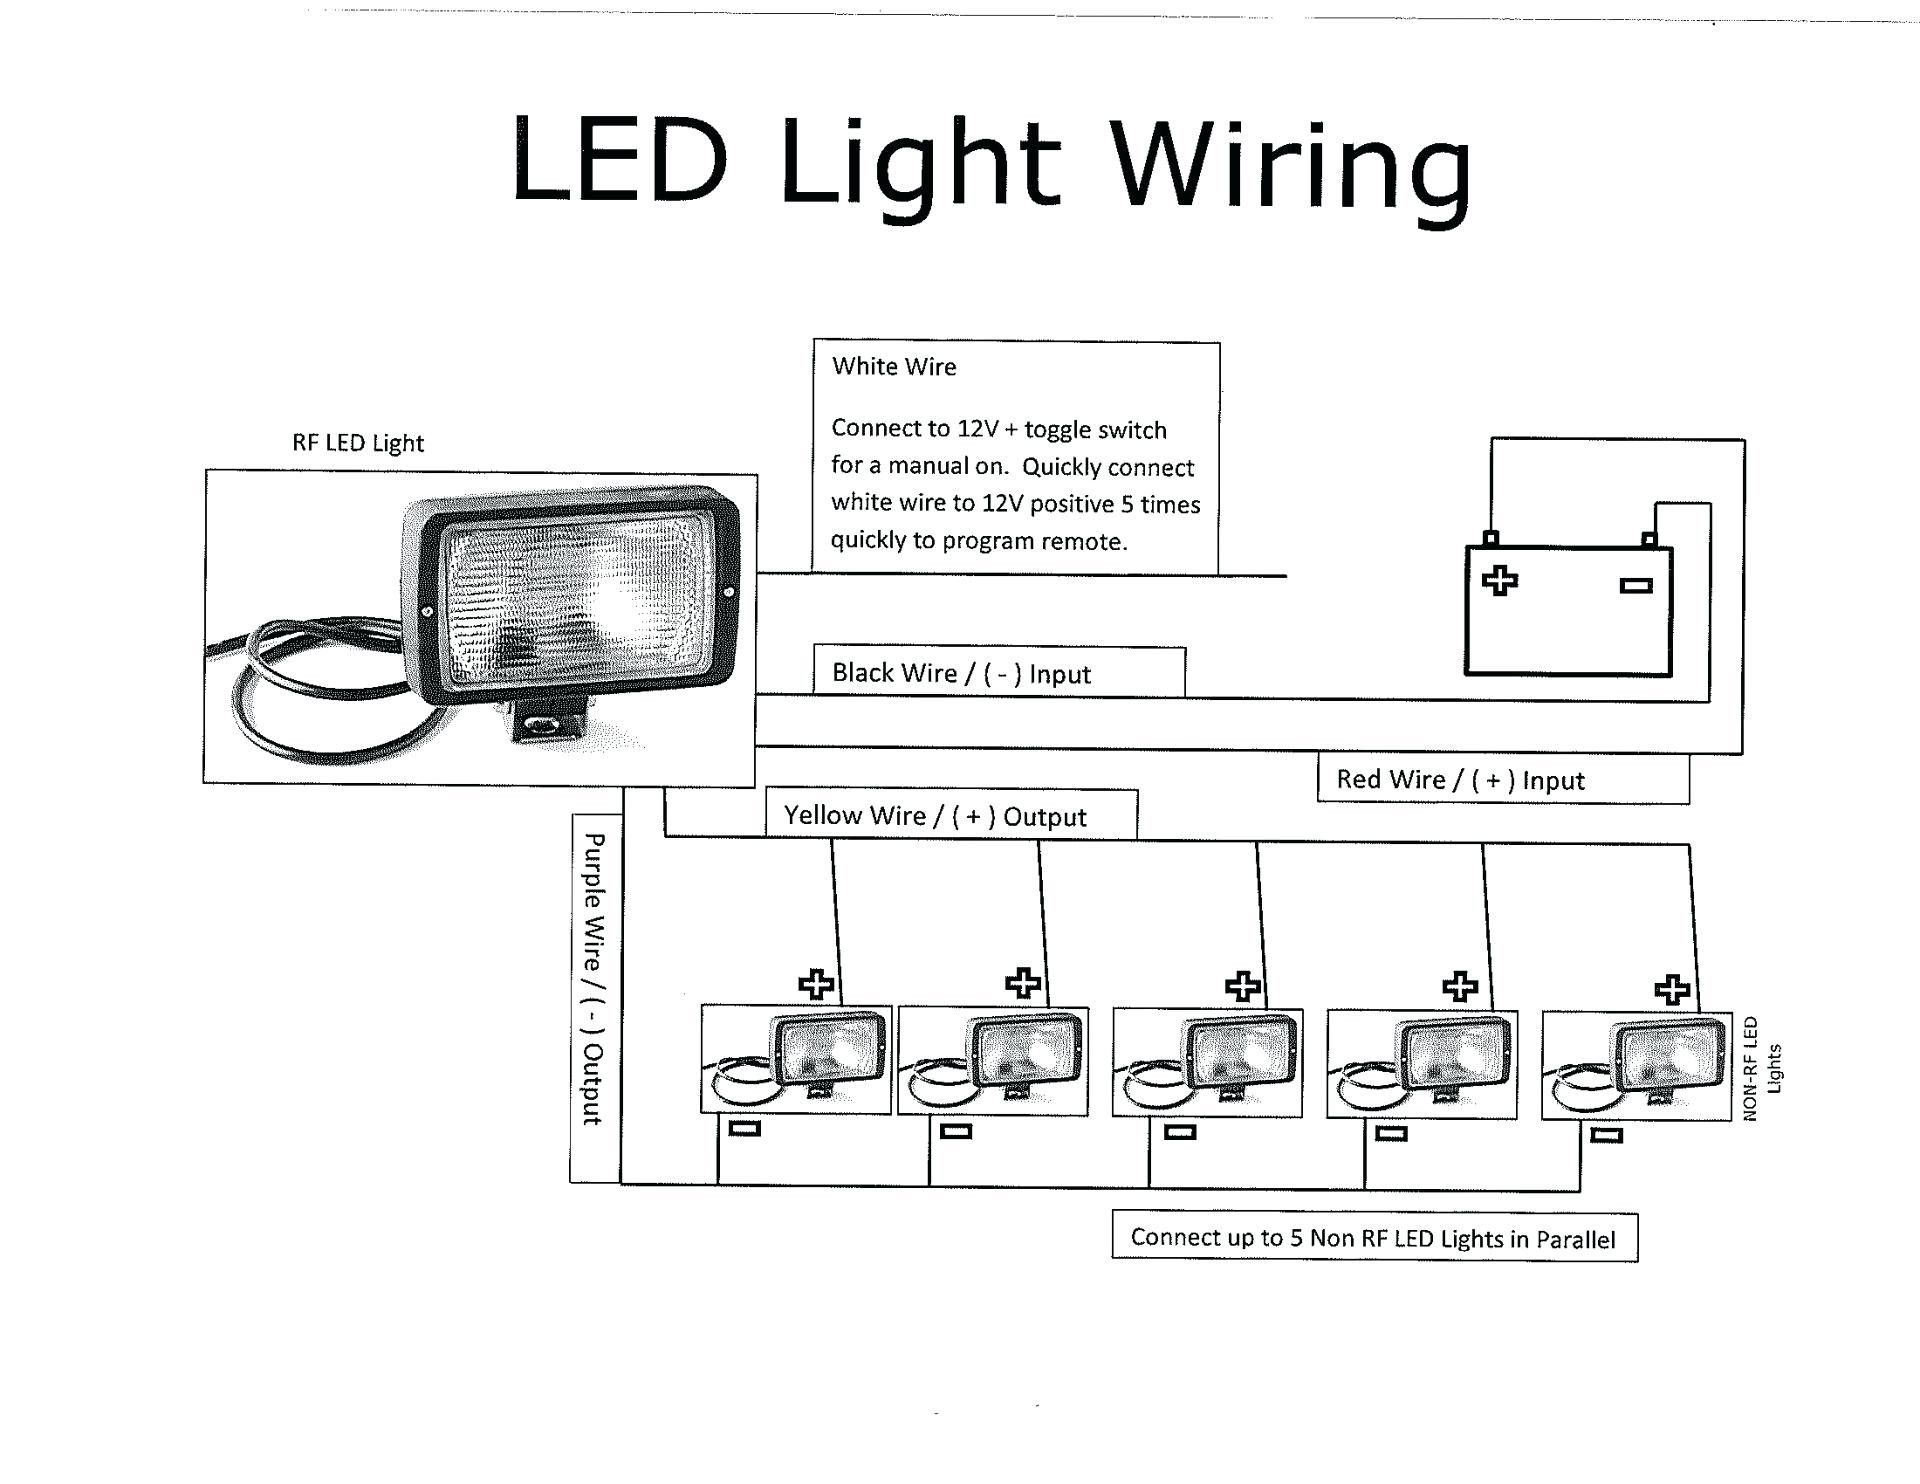 How To Wire Downlights Diagram Communication Flow In Diagram Double Light Switch Electrical Wiring Diagram